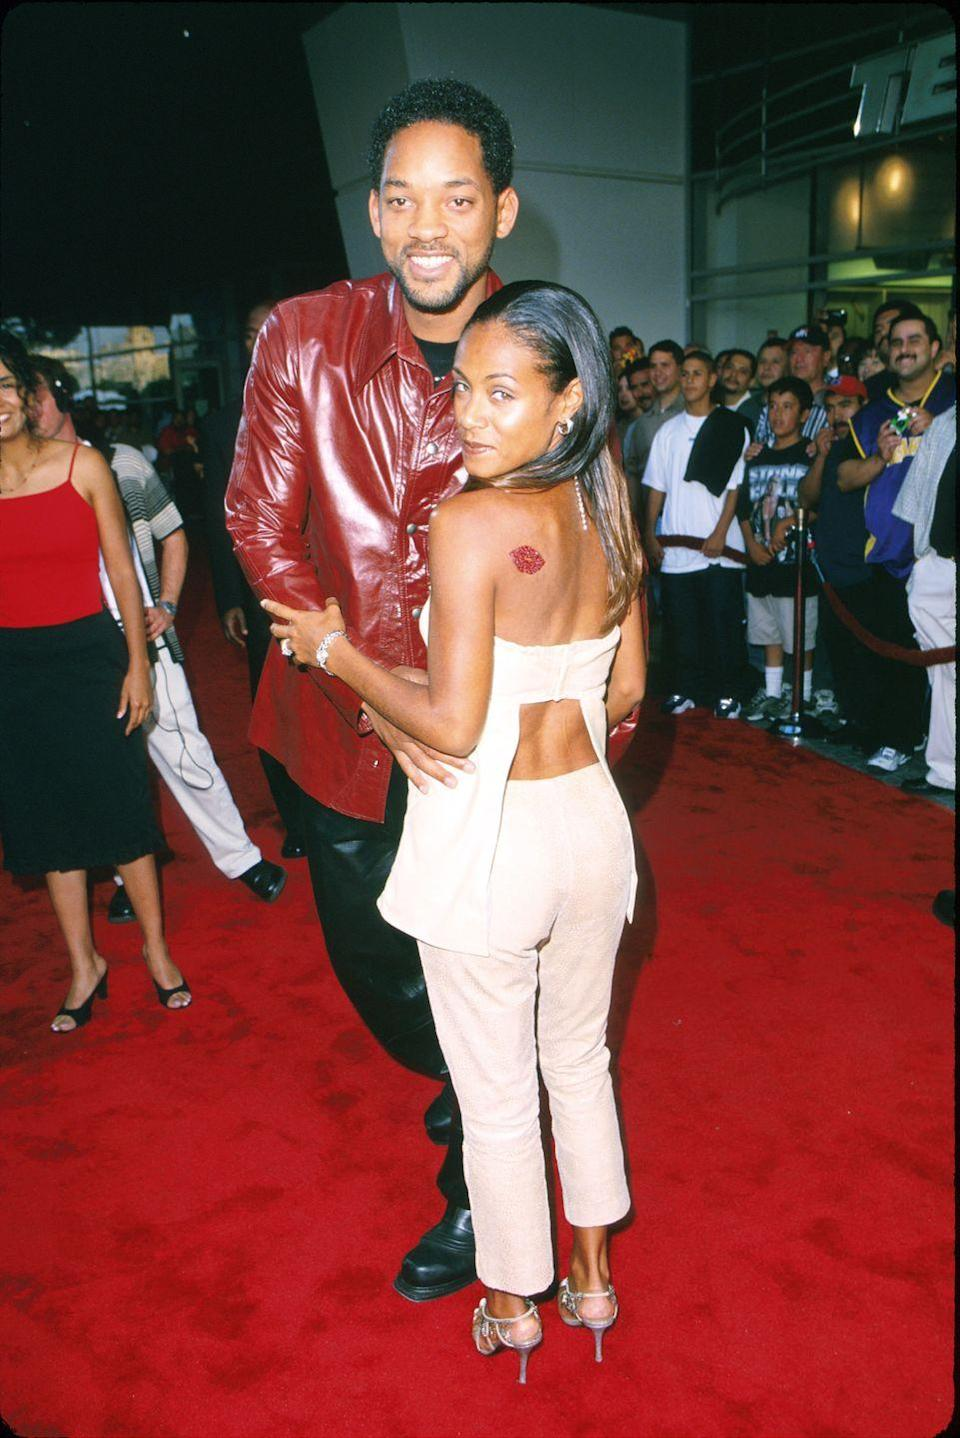 <p>At the Oscar De La Hoya Fight the World Welterweight Championship, Will was a bad boy in a red leather shirt, while Jada opted for a lower-back cut-out and a rhinestone decal.</p>